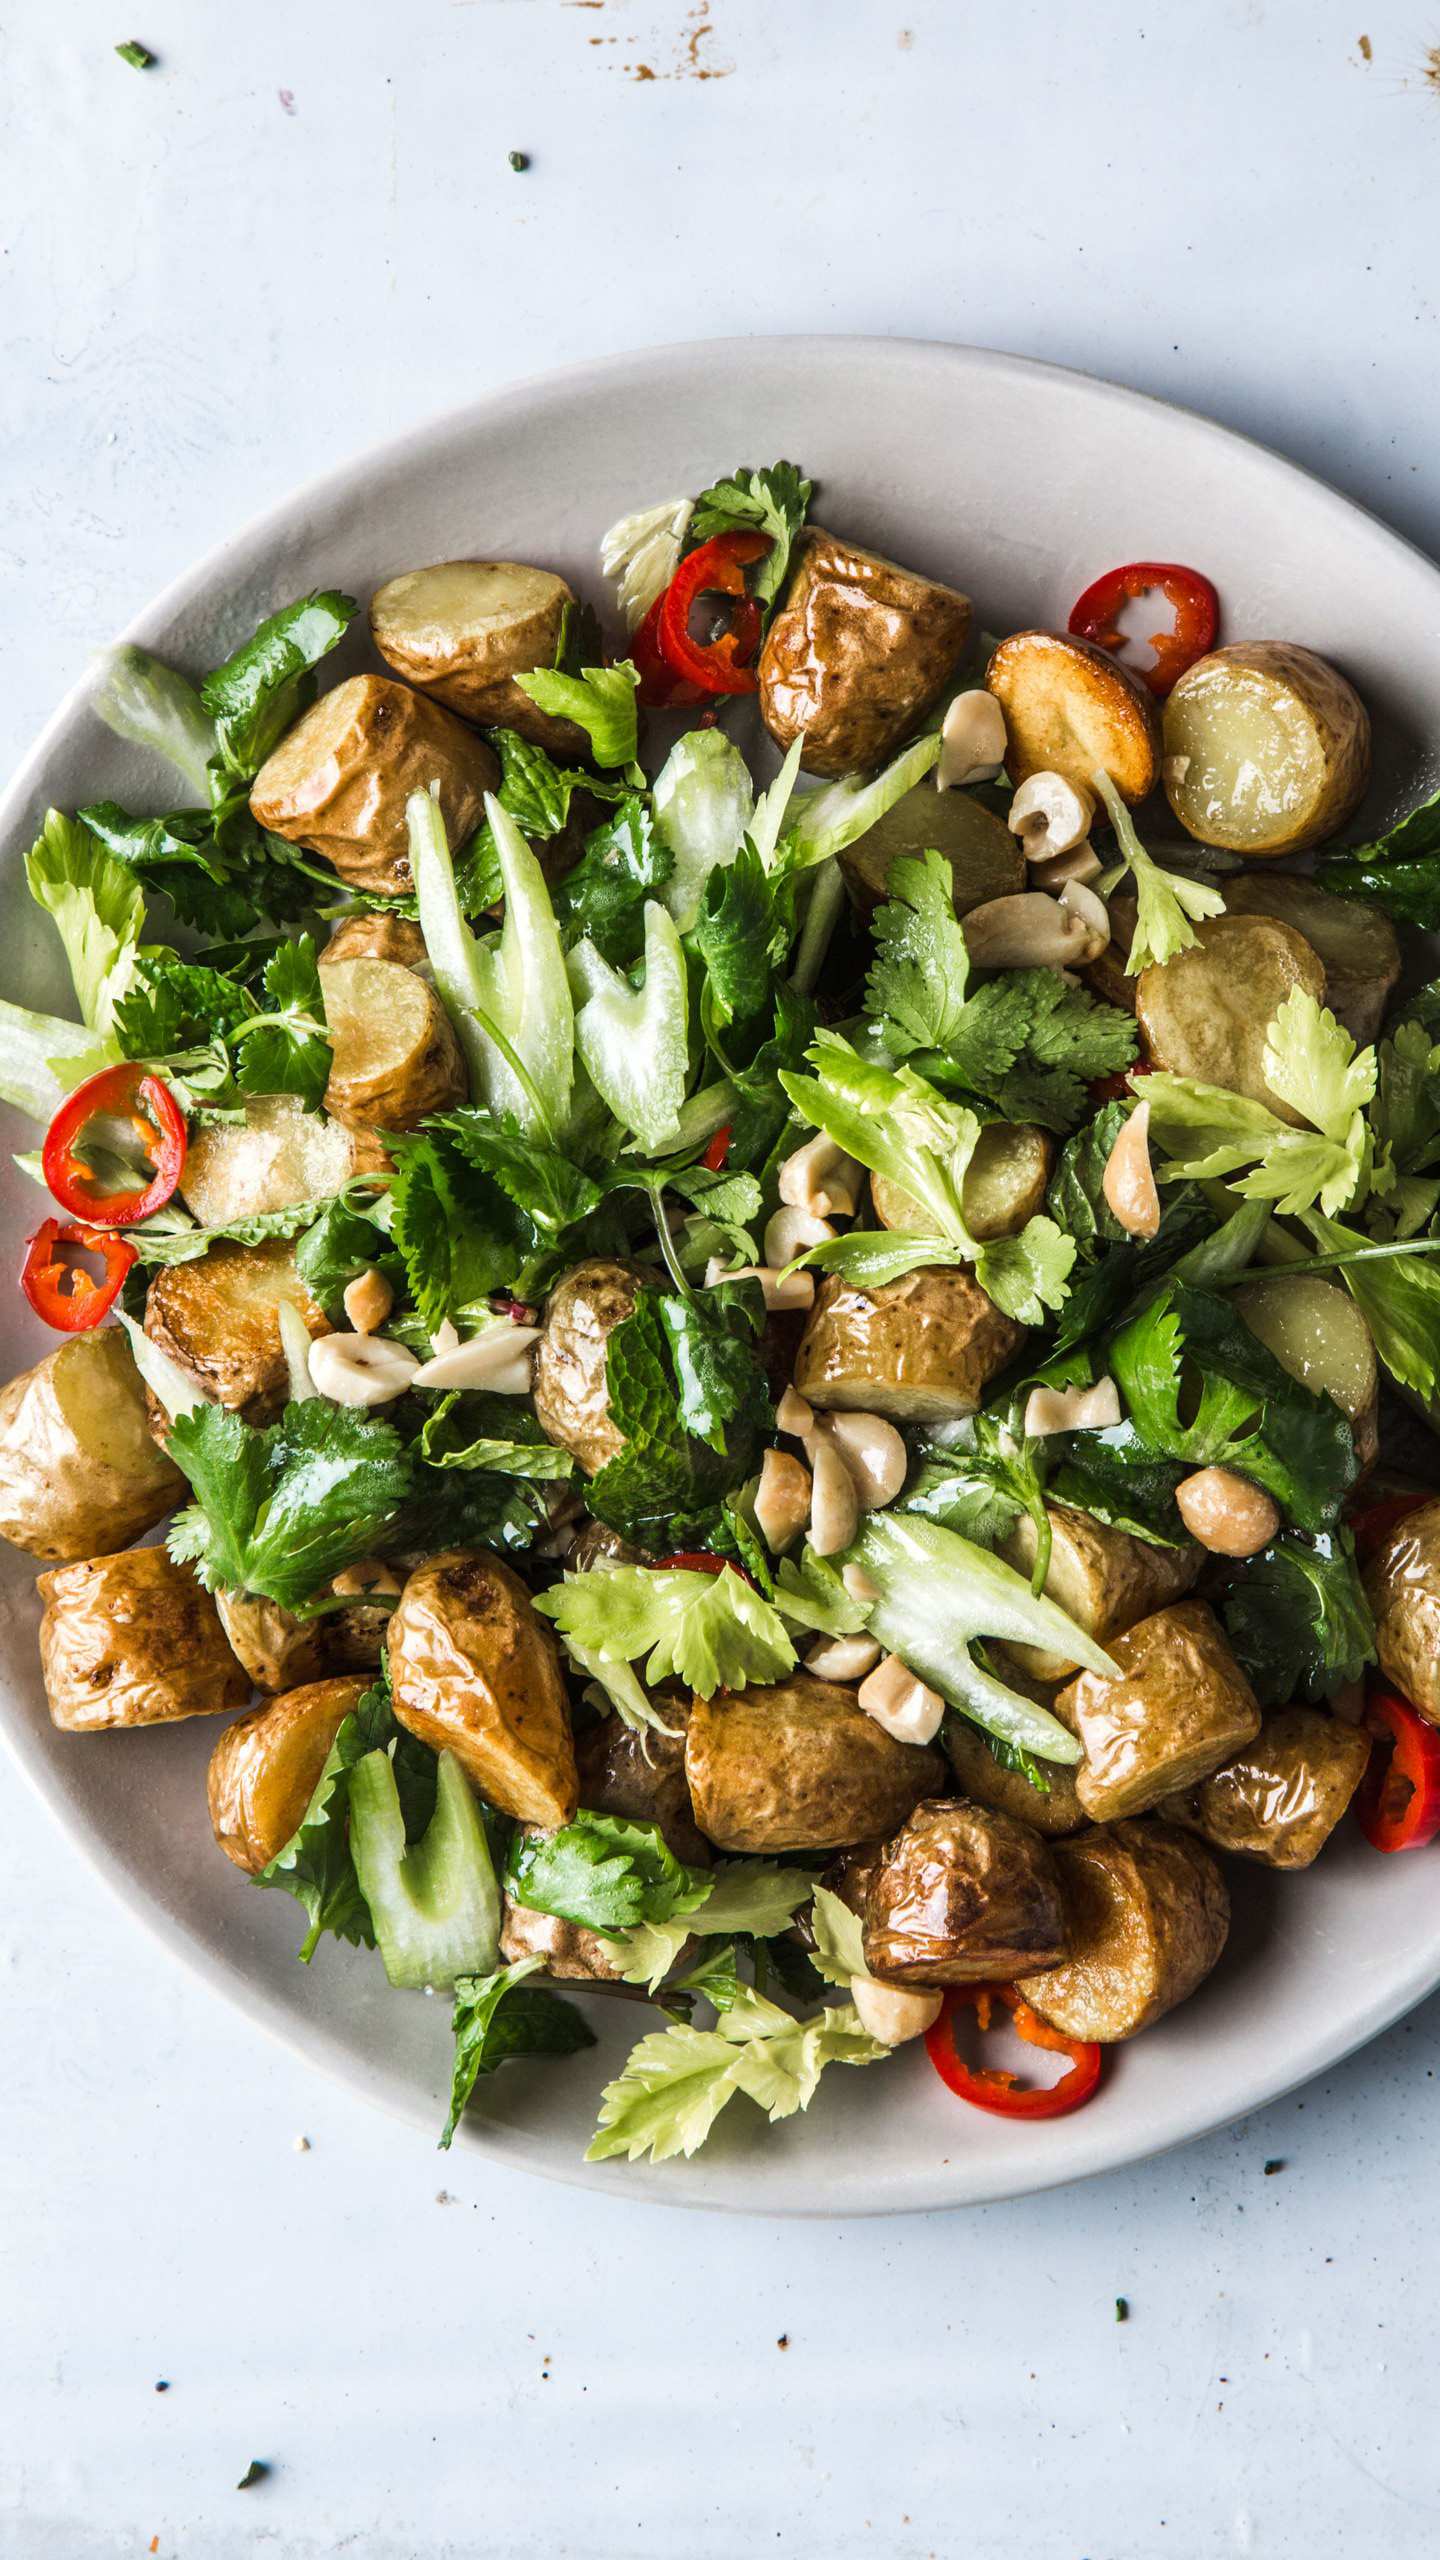 crispy-potato-salad-with-chiles-celery-and-peanuts.jpg